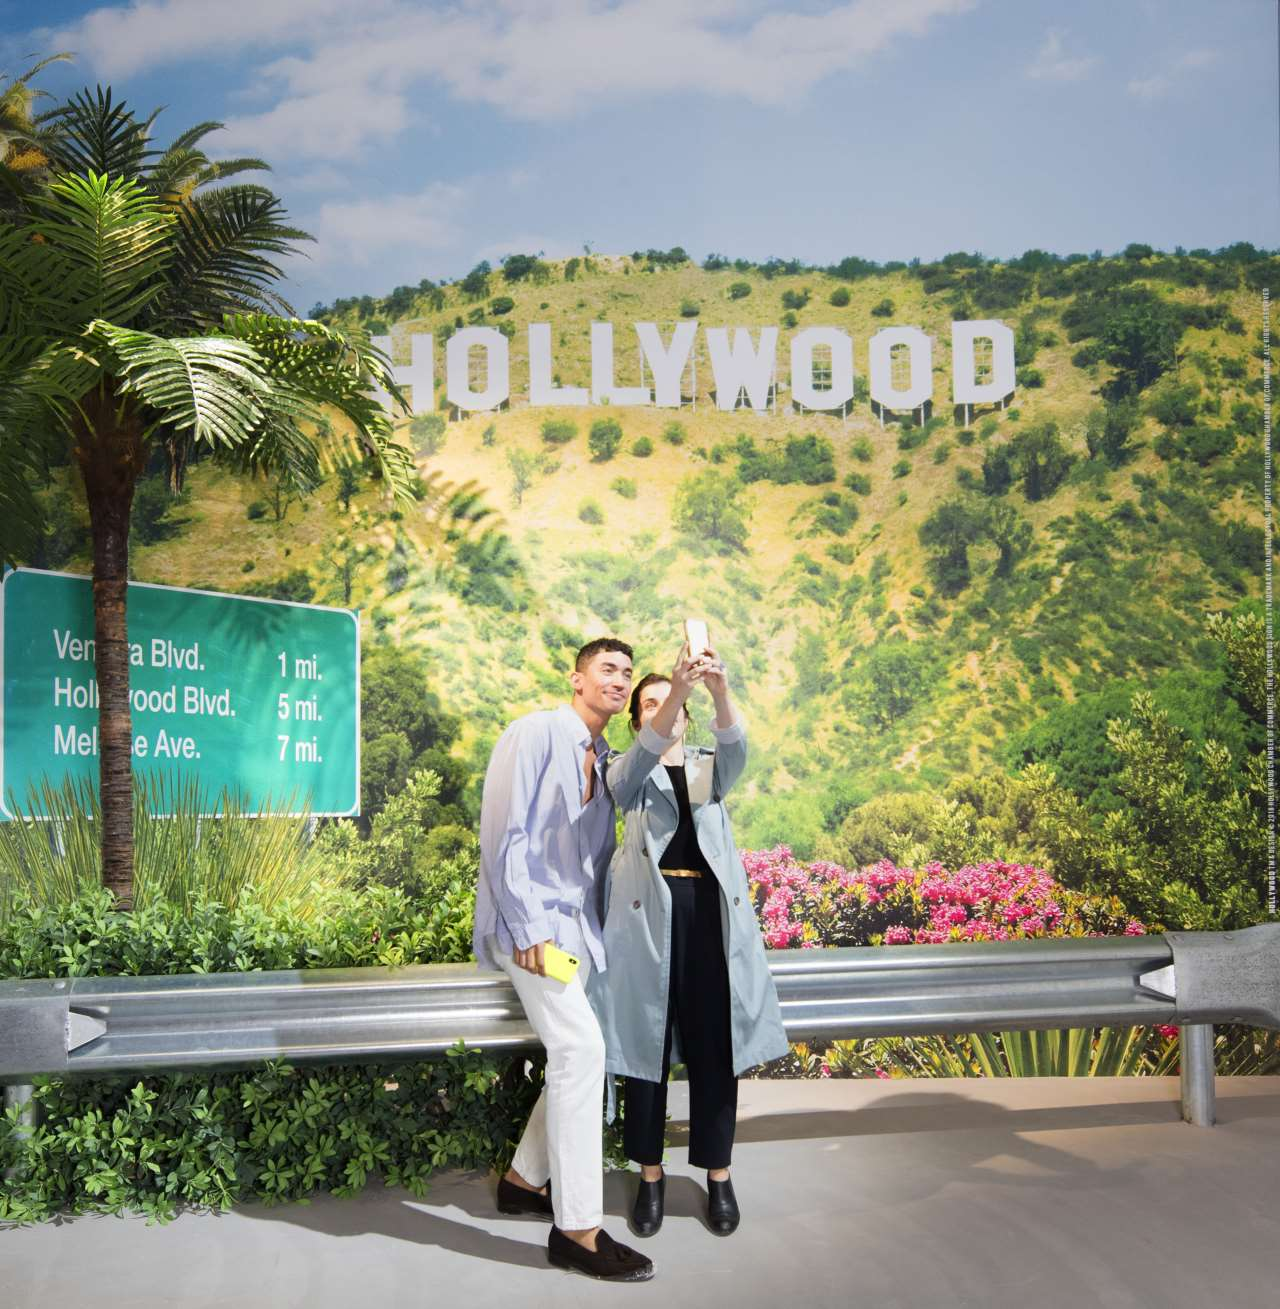 The Artist is Present, Shanghai 2018.Exhibition View. HOLLYWOOD TM & Design © 2018. Hollywood Chamber of Commerce. The Hollywood Sign is a trademark and intellectual property of Hollywood Chamber of Commerce. All Rights Reserved.